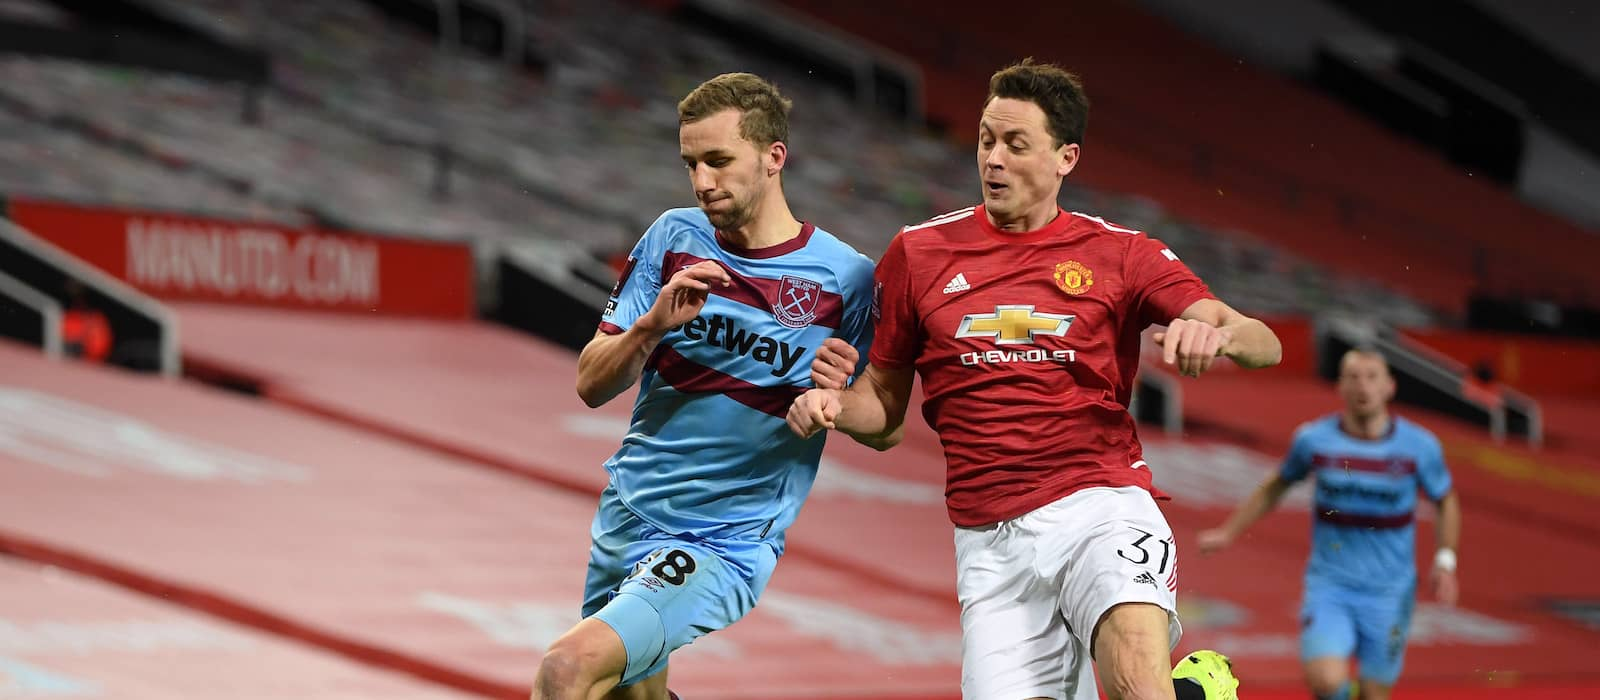 Manchester United impressed by West Ham's Tomas Soucek